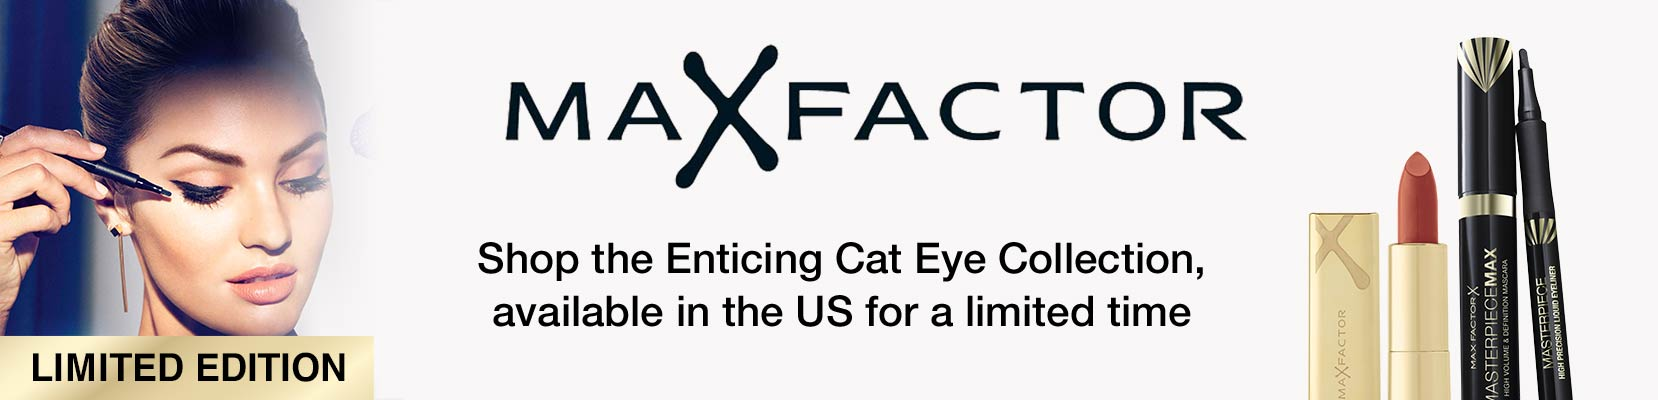 Limited Edition Max Factor. Shop the Enticing Cat Eye Collection, available in the US for a limited time.